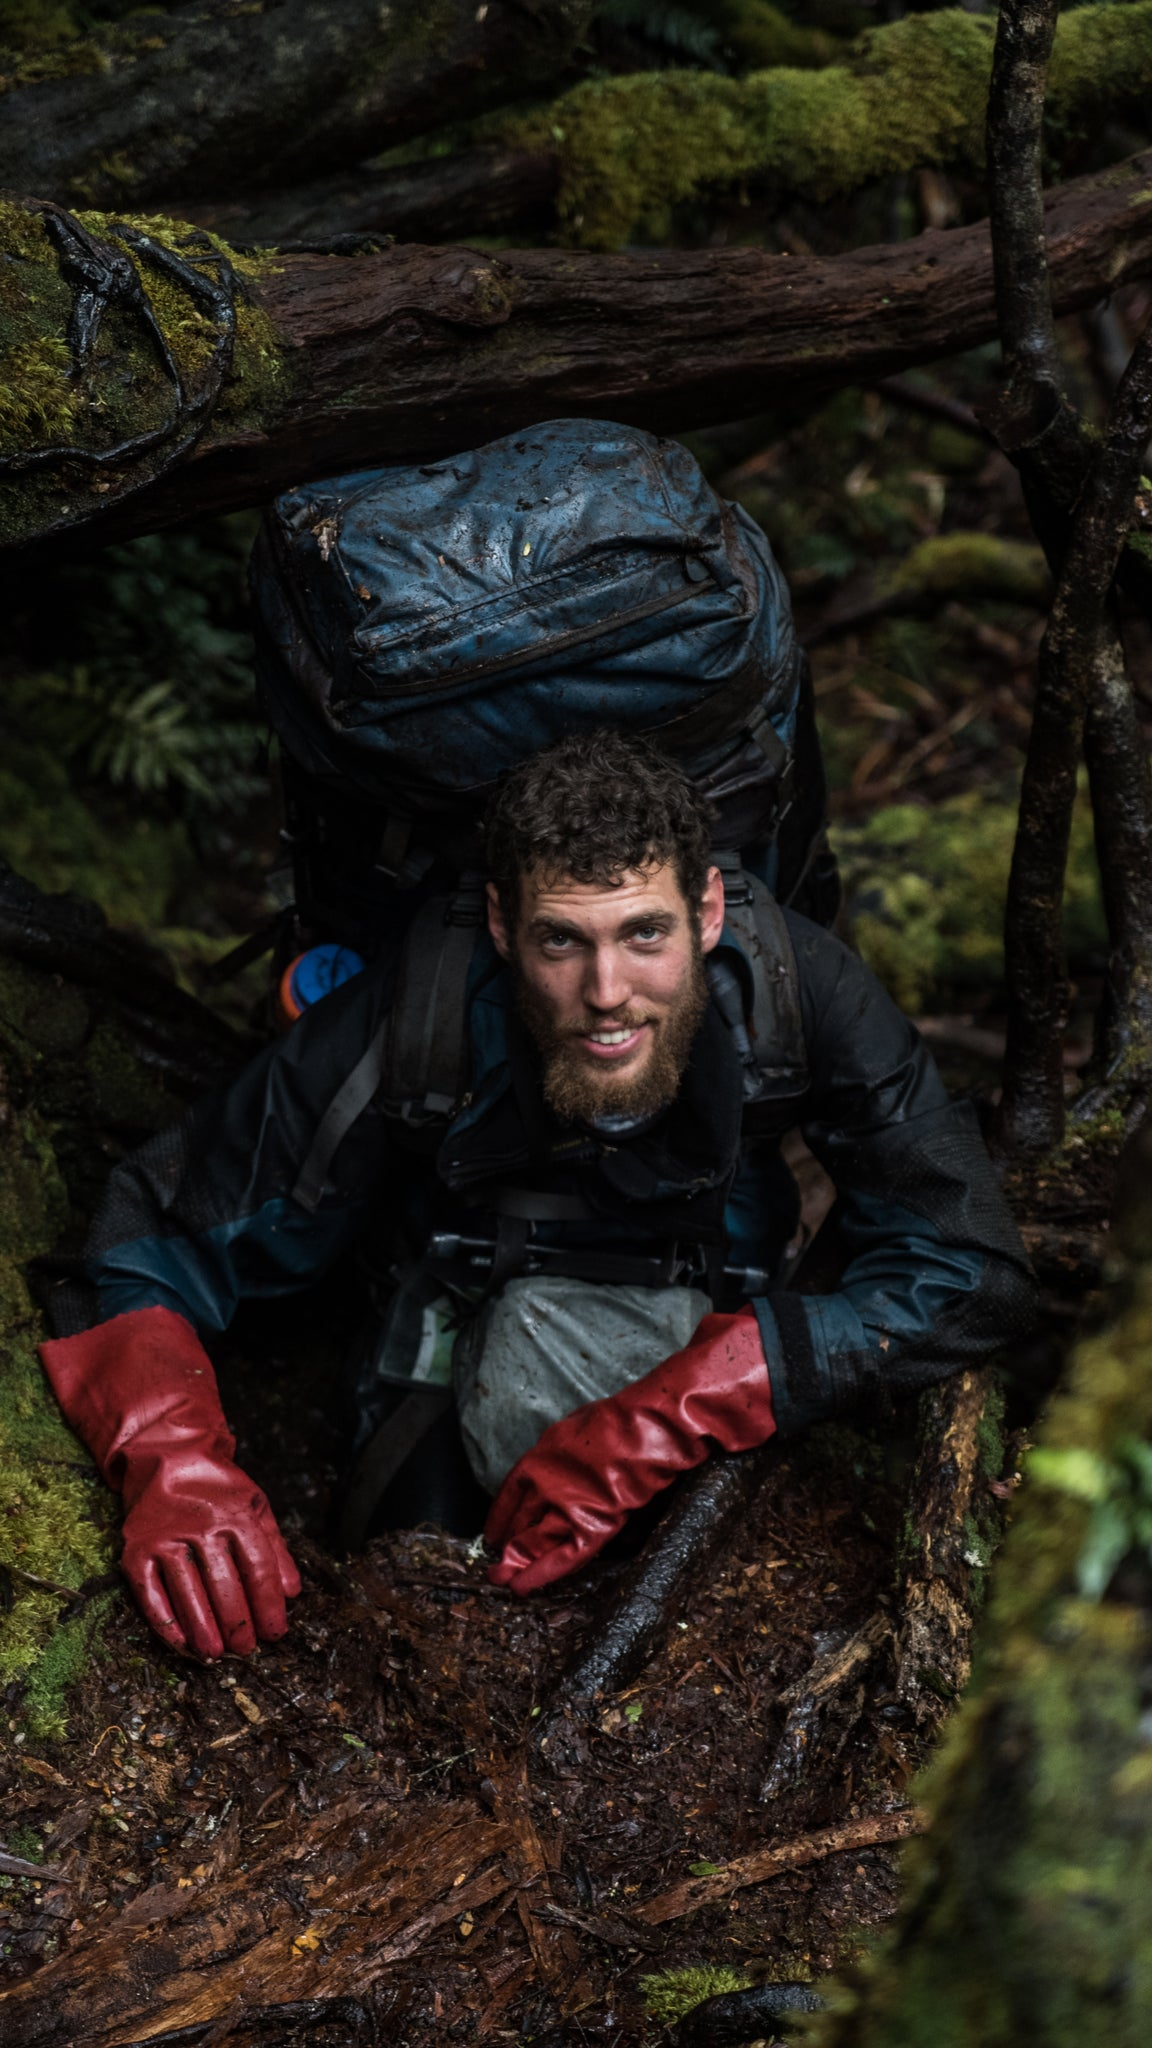 Andy Szollosi climbing in Tasmania into know where carrying a 45 kilo pack. This photo from one of TASPARKS trails in the wilderness of Tasmania when filming Winter on the Blade. Hiking in Tasmania is a passion of Andy's and carrying in  his camera gear to capture these rugged landscapes and epic adventures is what we love about Andy Szollosi. Winter on the Blade is one of the most epic films following a crew of climbers in Tasmania tackling Federation Peak. This film has been aired around the world through the Banff Mountain Film Festival 2018.